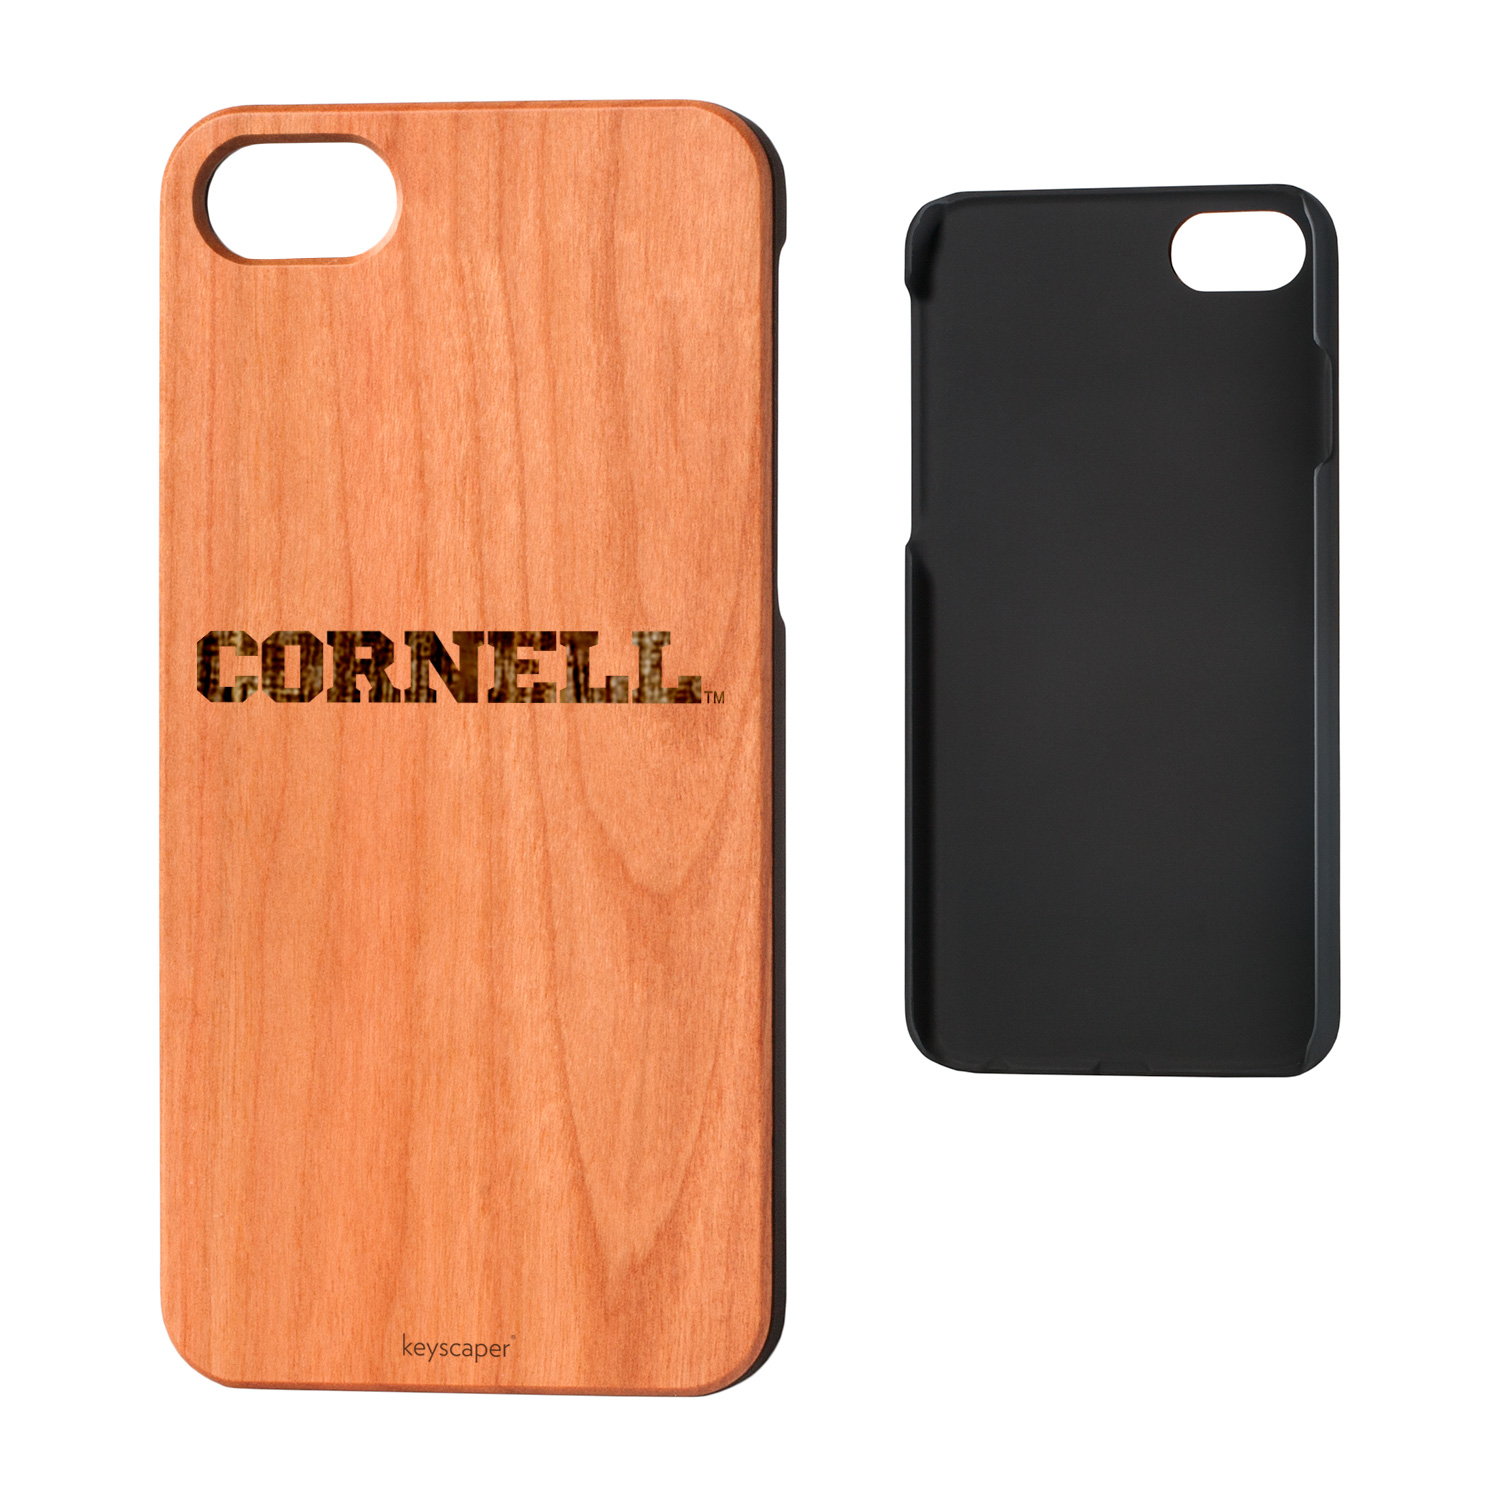 Cornell University Cherry Wood iPhone 7 / iPhone 8 Case NCAA